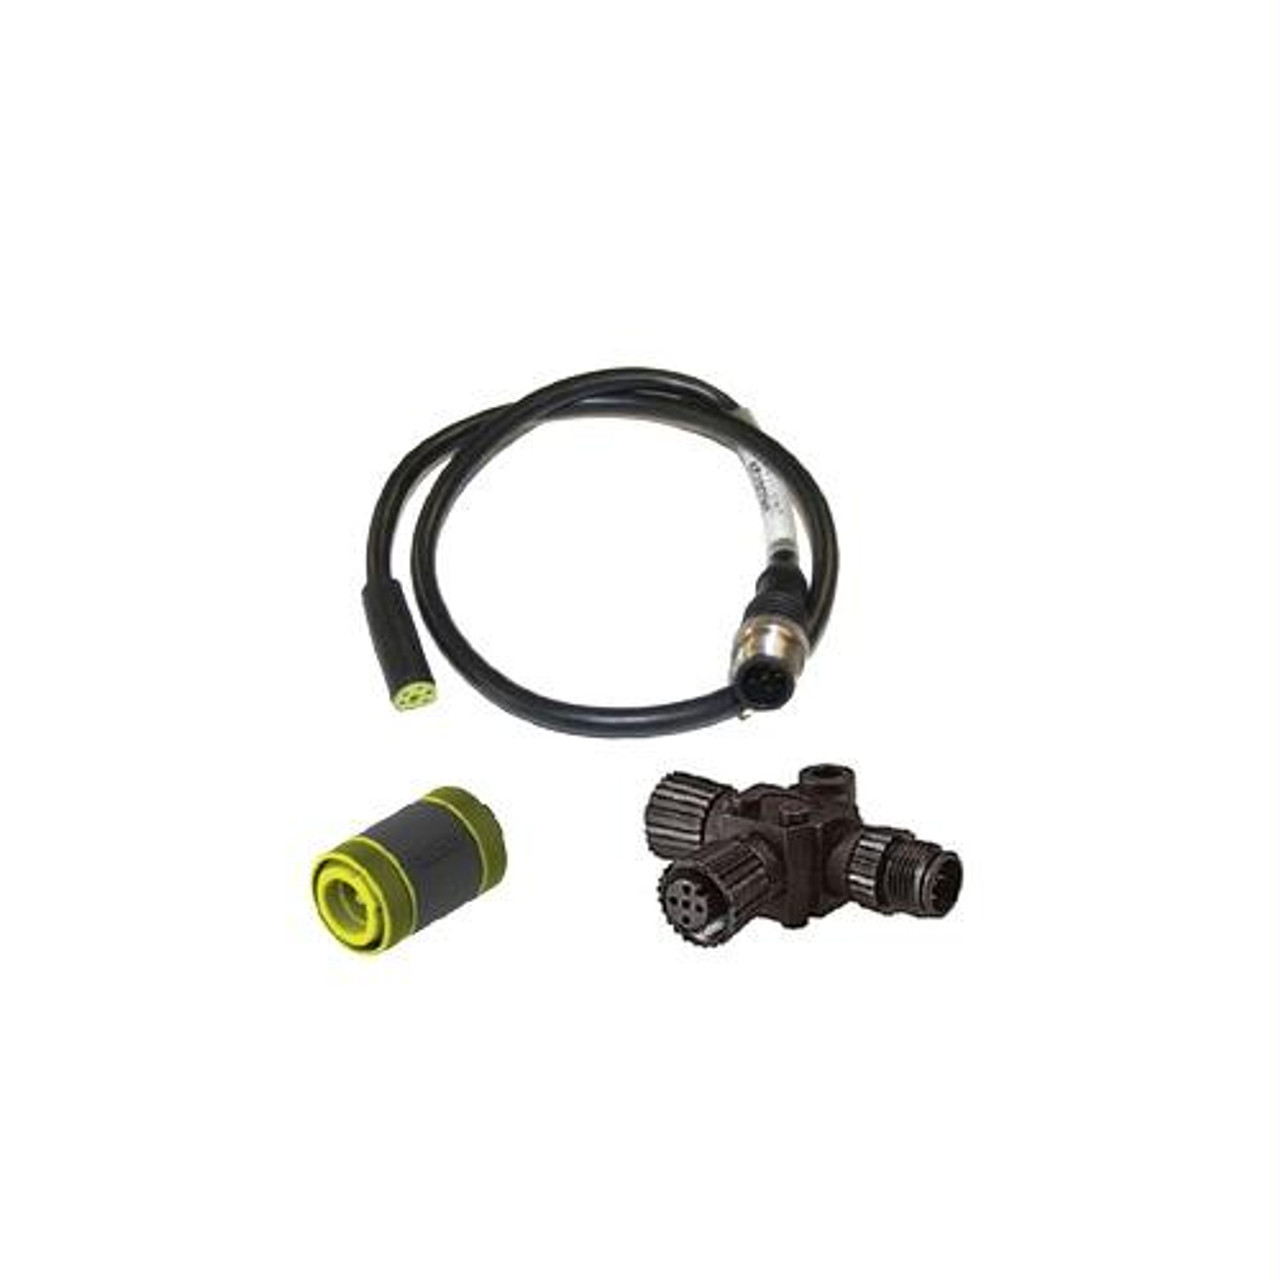 Lowrance SimNet To N2K Adapter Kit